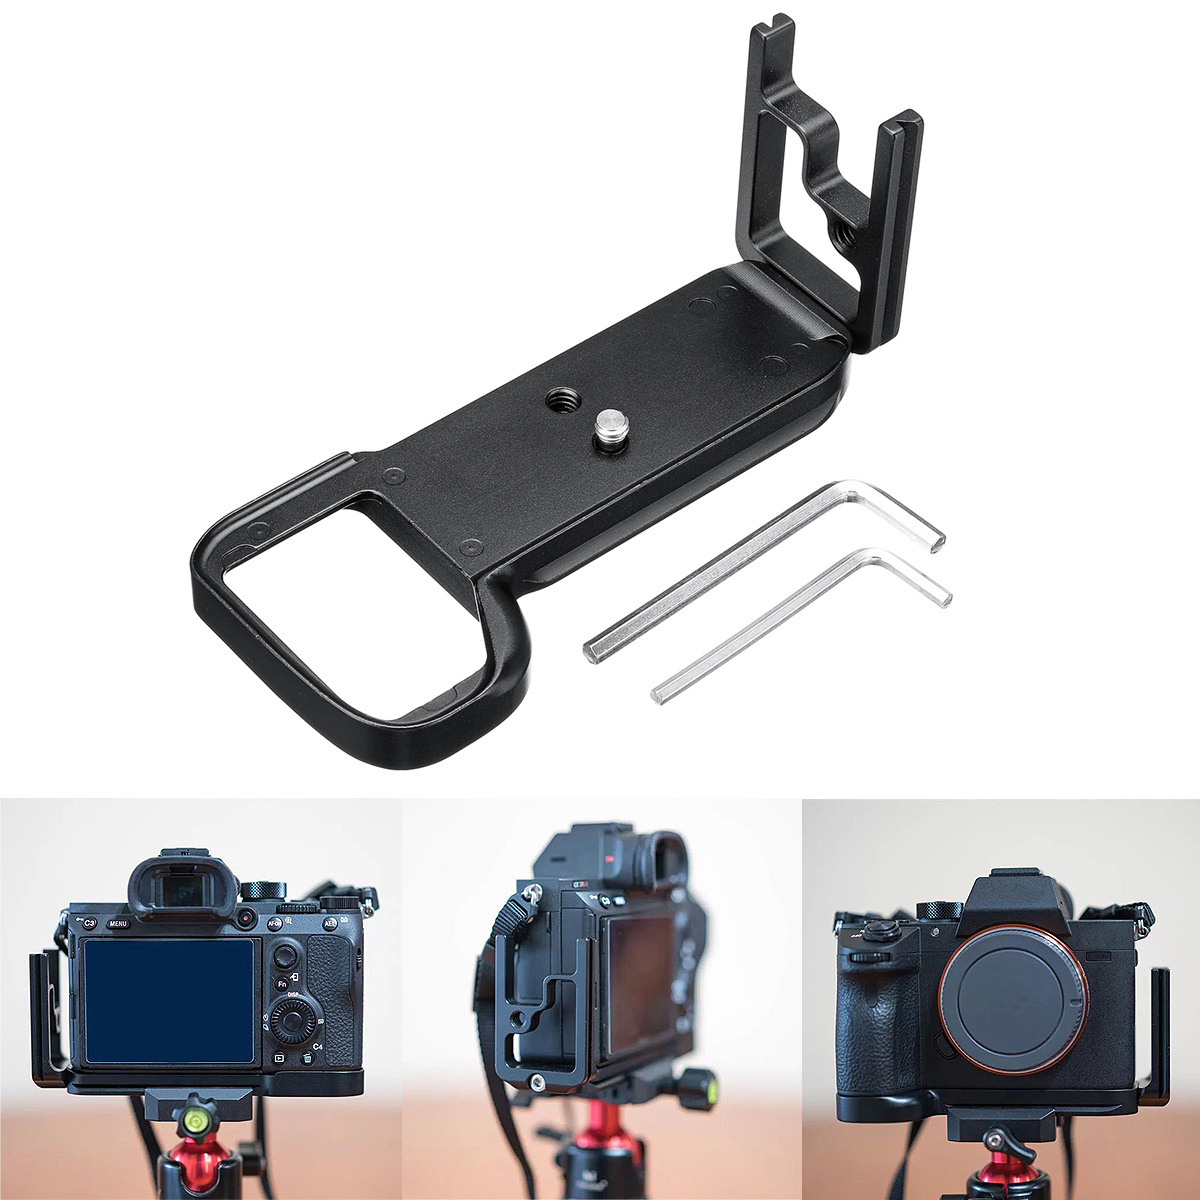 Quick Release L Plate Bracket with Hand Grip for Sony A7RIII ILCE-7RM3 ARCA Swis Black Tripod Monopods Holder Aluminium Alloy